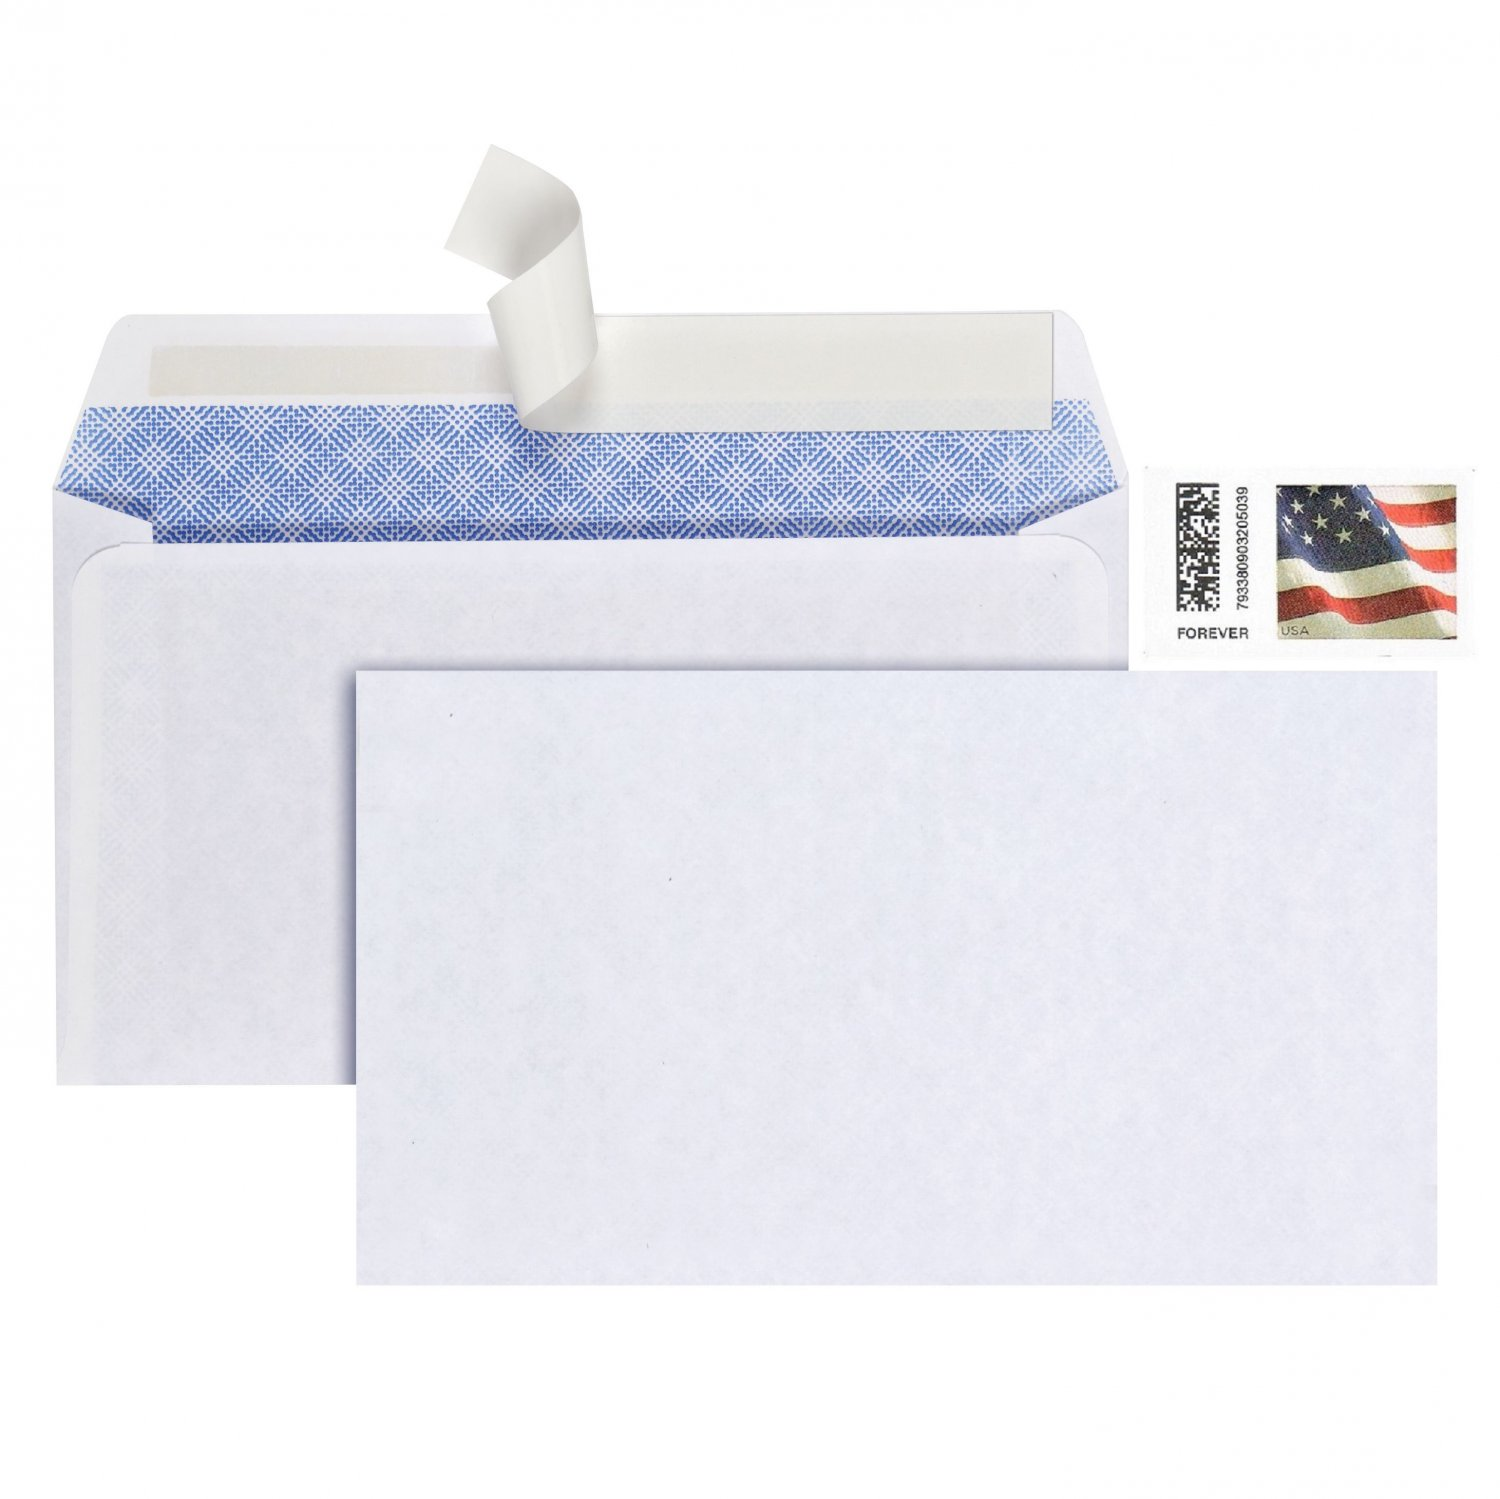 PEN+GEAR Security Envelopes White #6-3/4 (3-5/8 x 6-1/2 in) Peel & Stick 50 Count